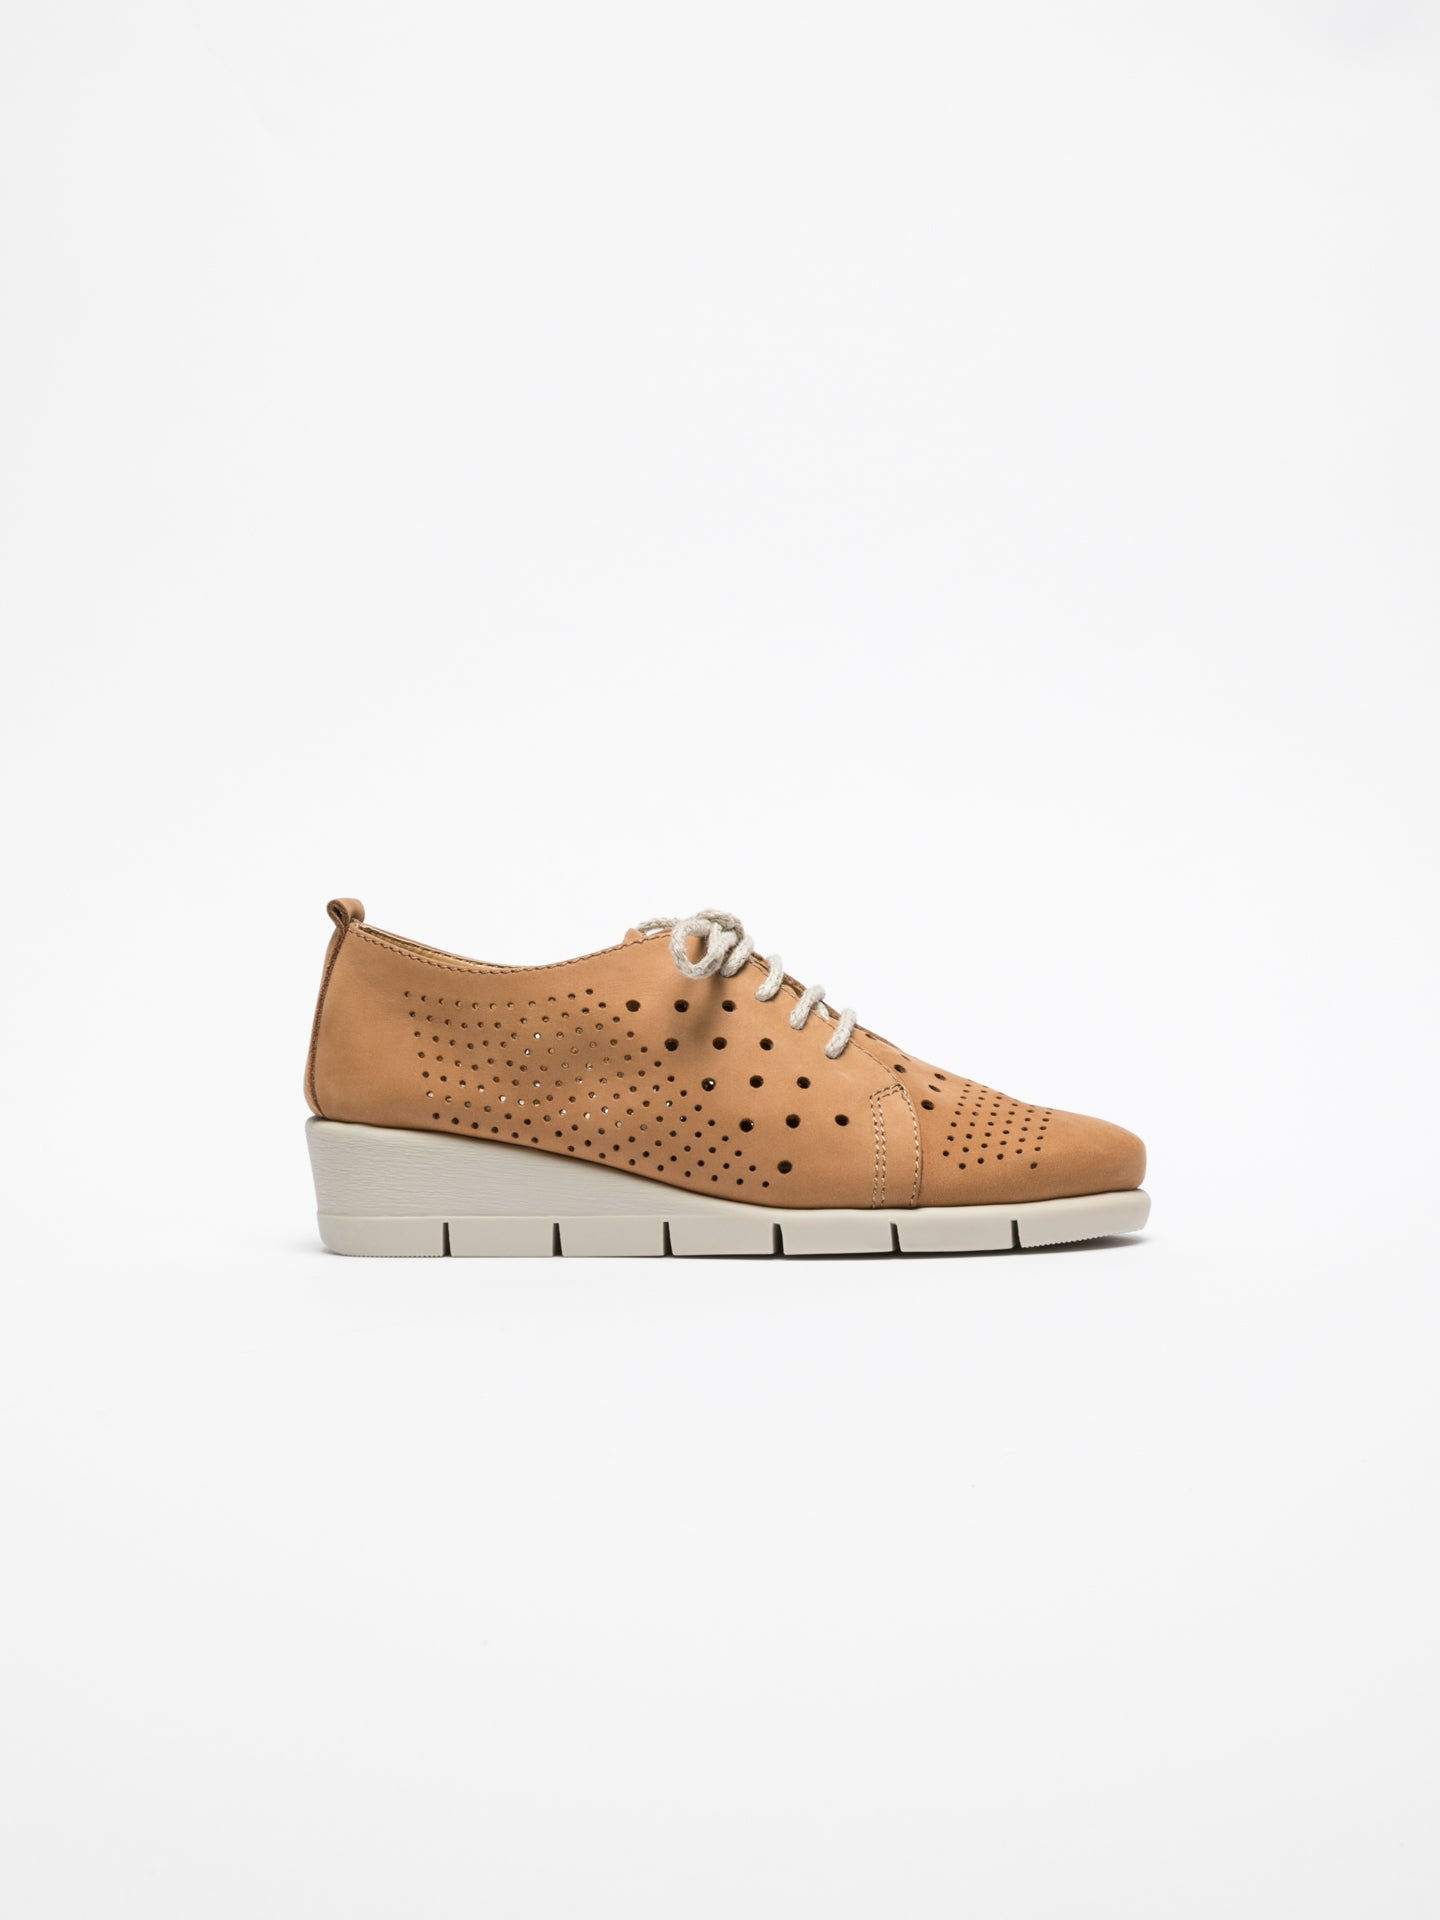 The Flexx Brown Lace Fastening Shoes